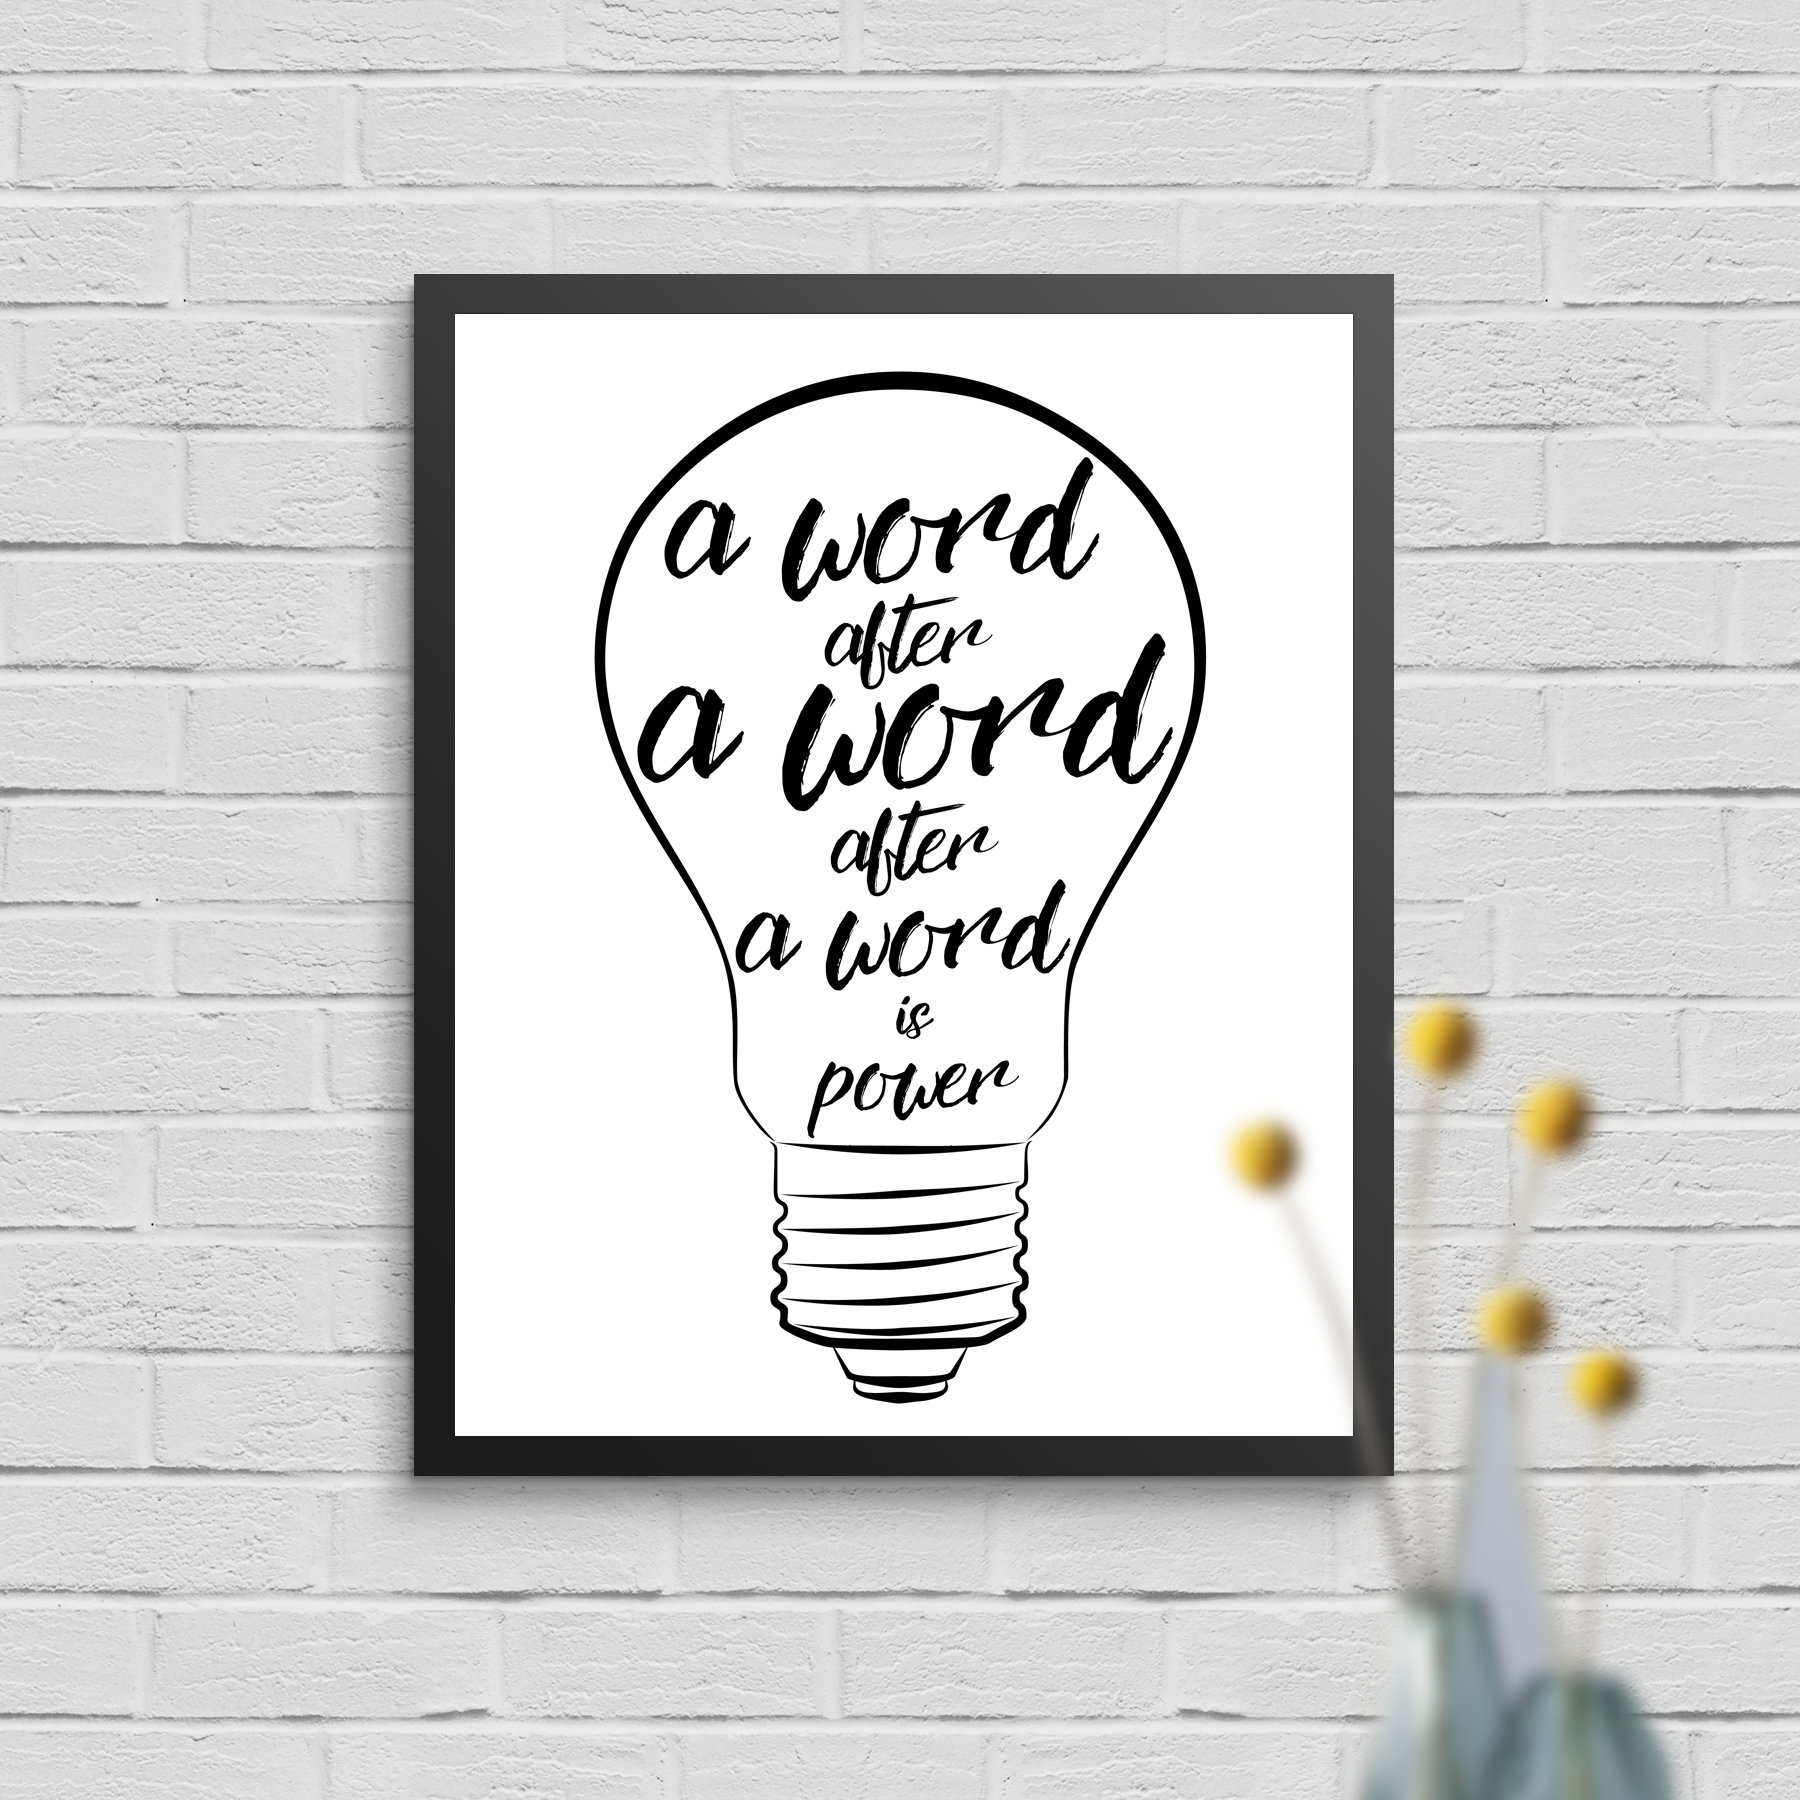 Click the image to shop this print. I hope it reminds you of the power of stories, and inspires you to listen to more, and to tell your own.